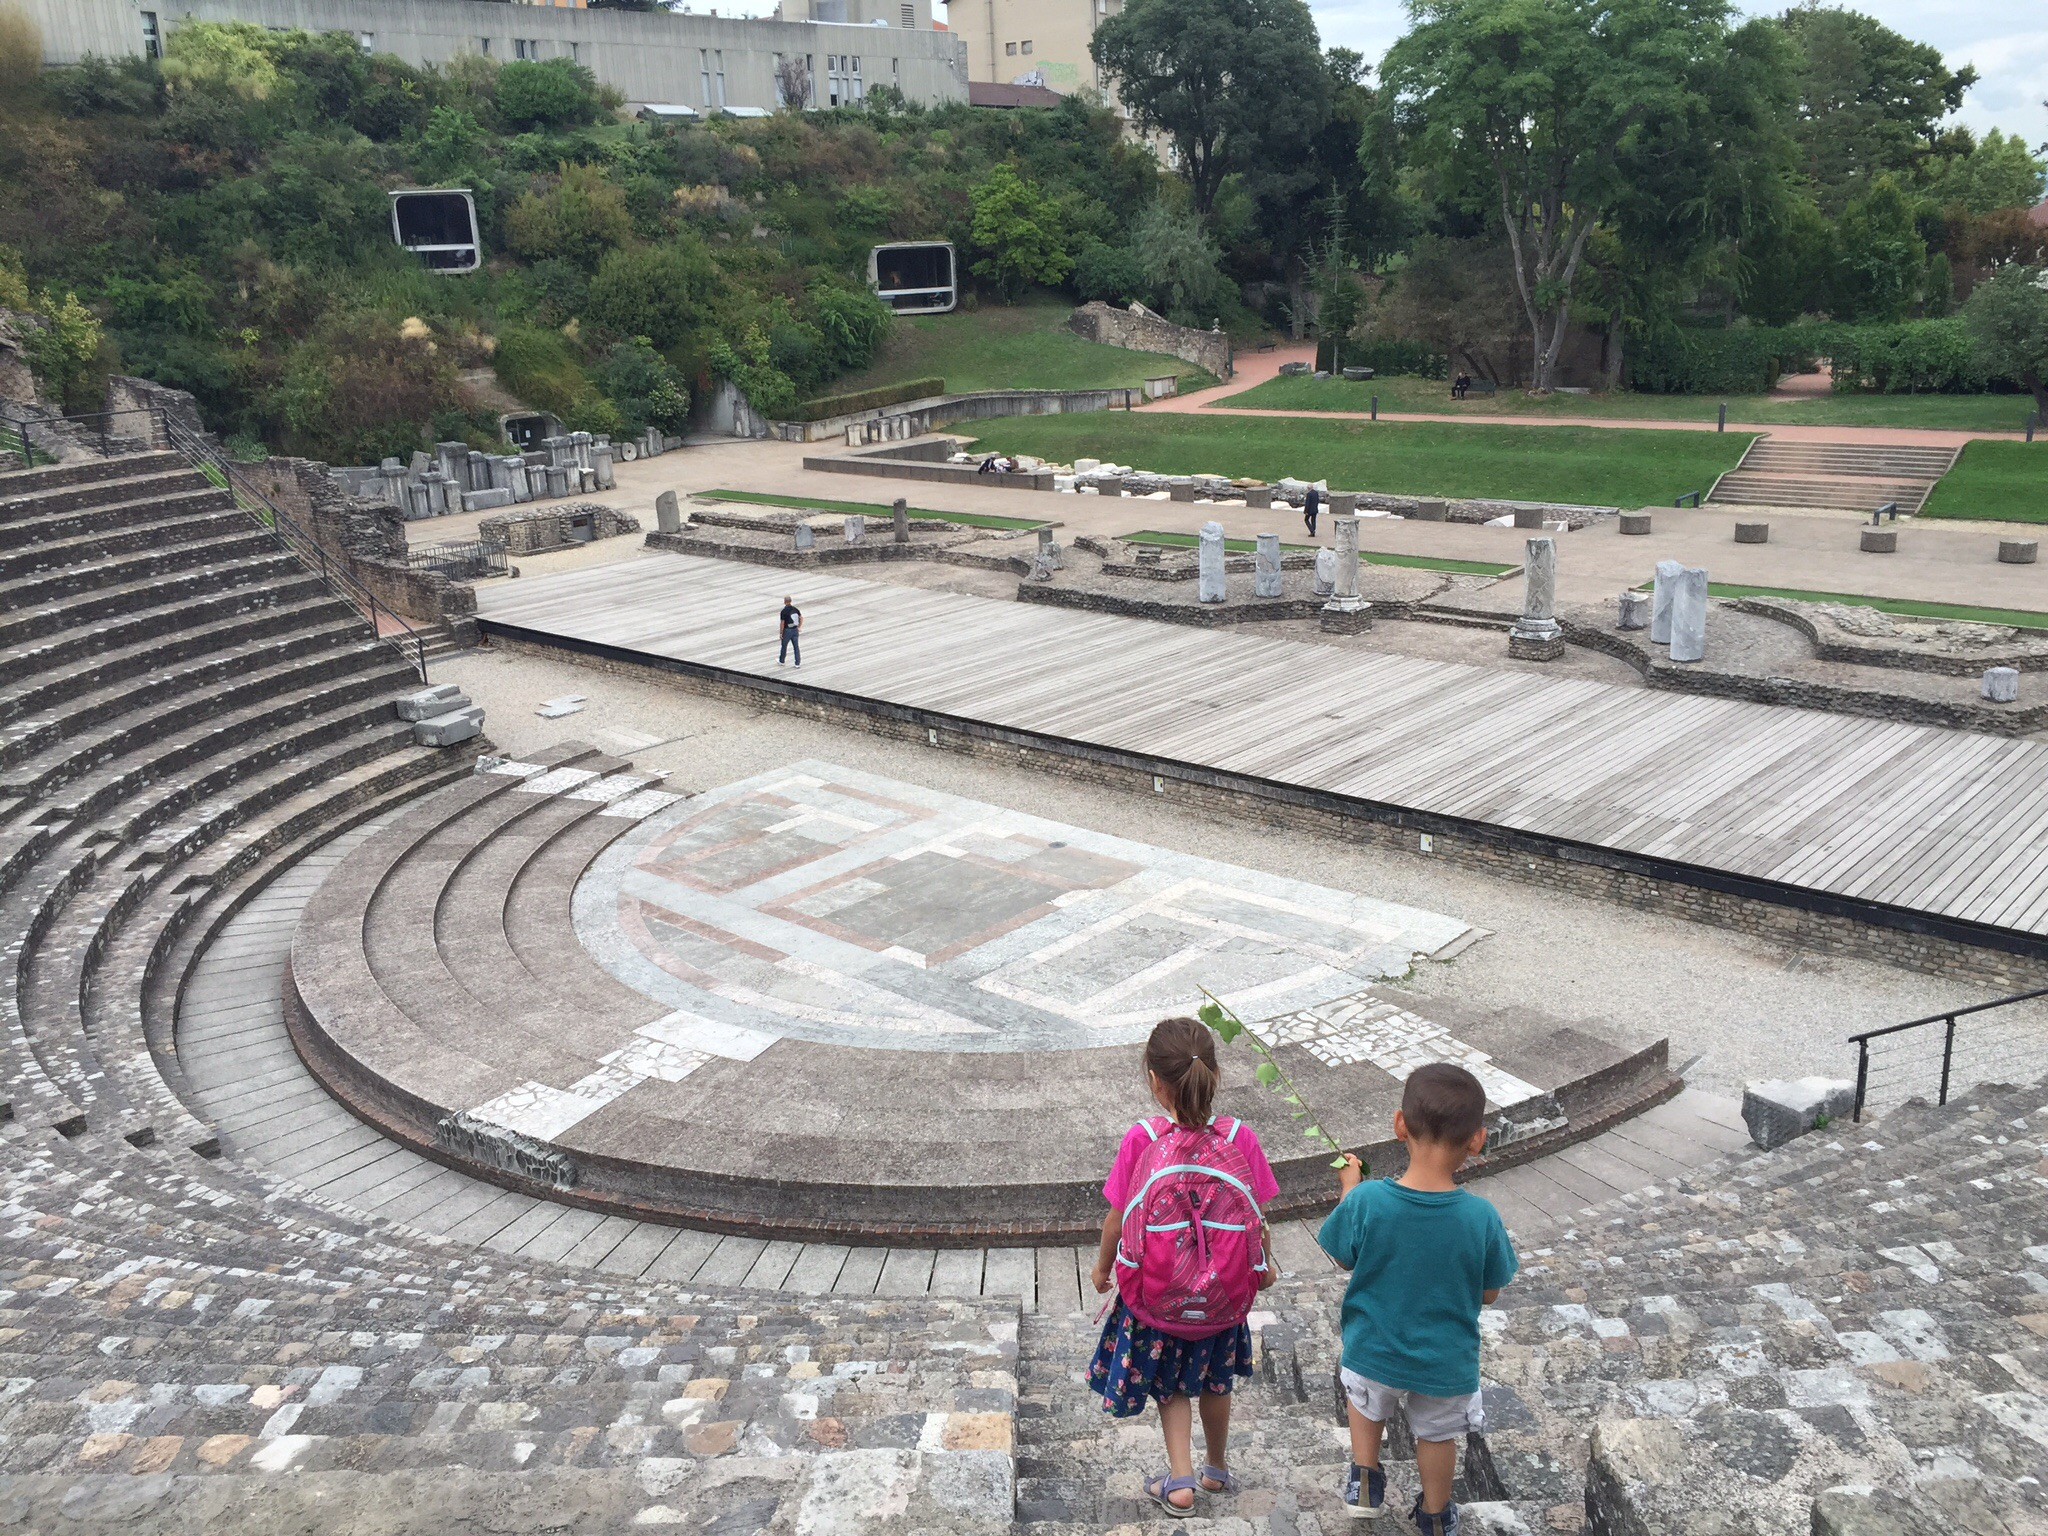 Visiting the nearby Roman ampitheater after school